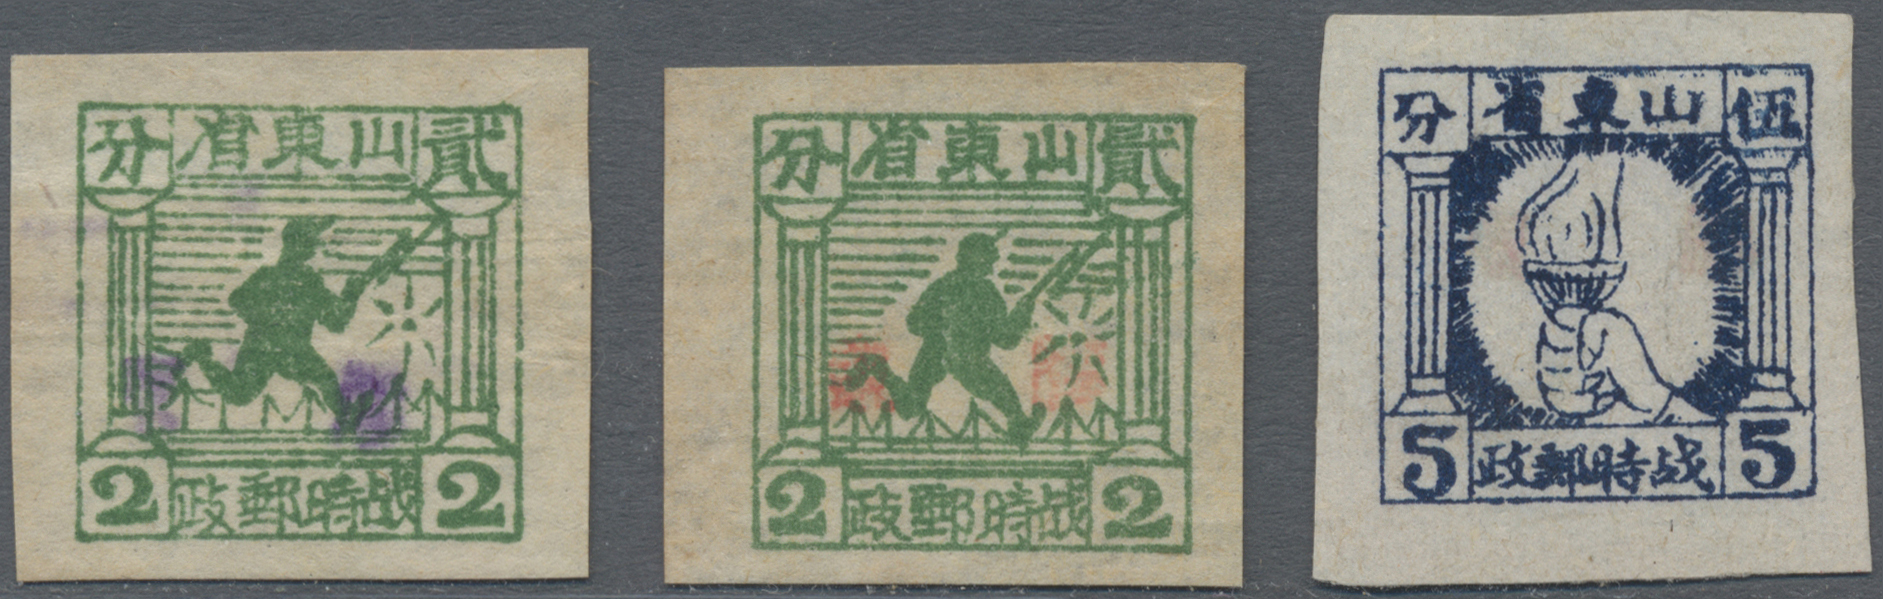 Lot 05095 - China - Volksrepublik - Provinzen  -  Auktionshaus Christoph Gärtner GmbH & Co. KG Sale #46 Special Auction China - including Liberated Areas